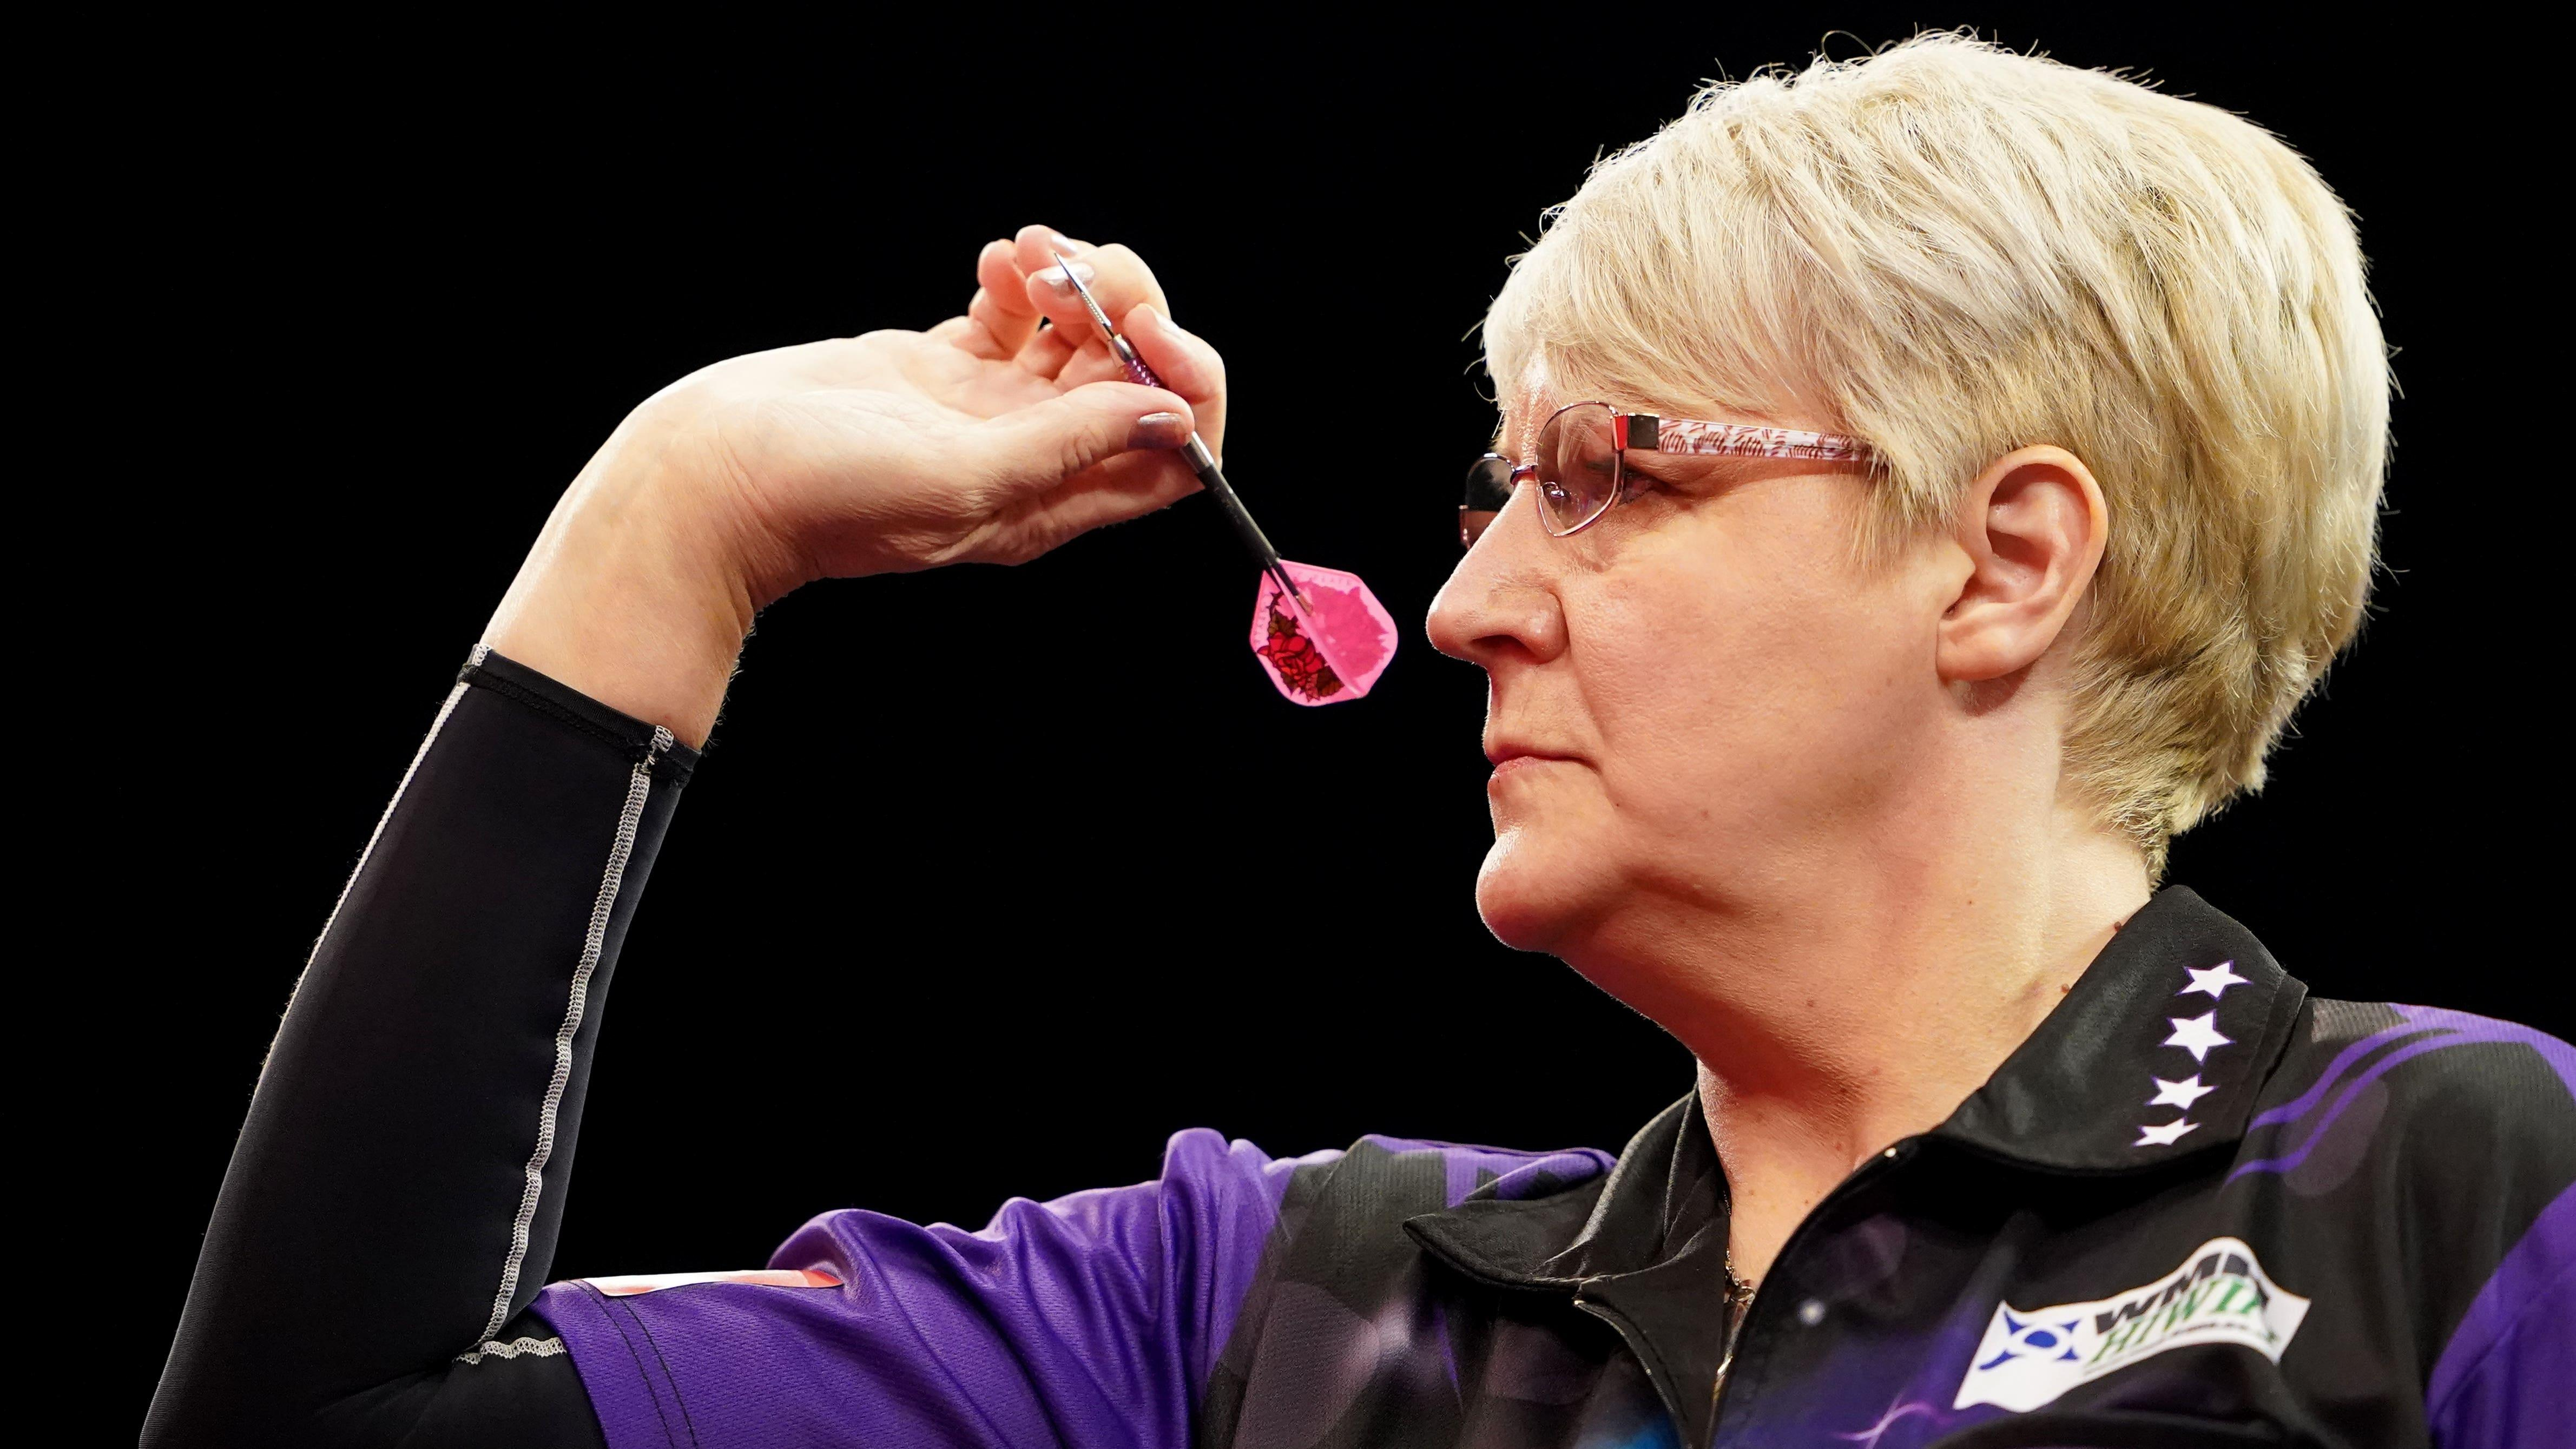 Lisa Ashton makes darts history with win at UK Open before third-round exit